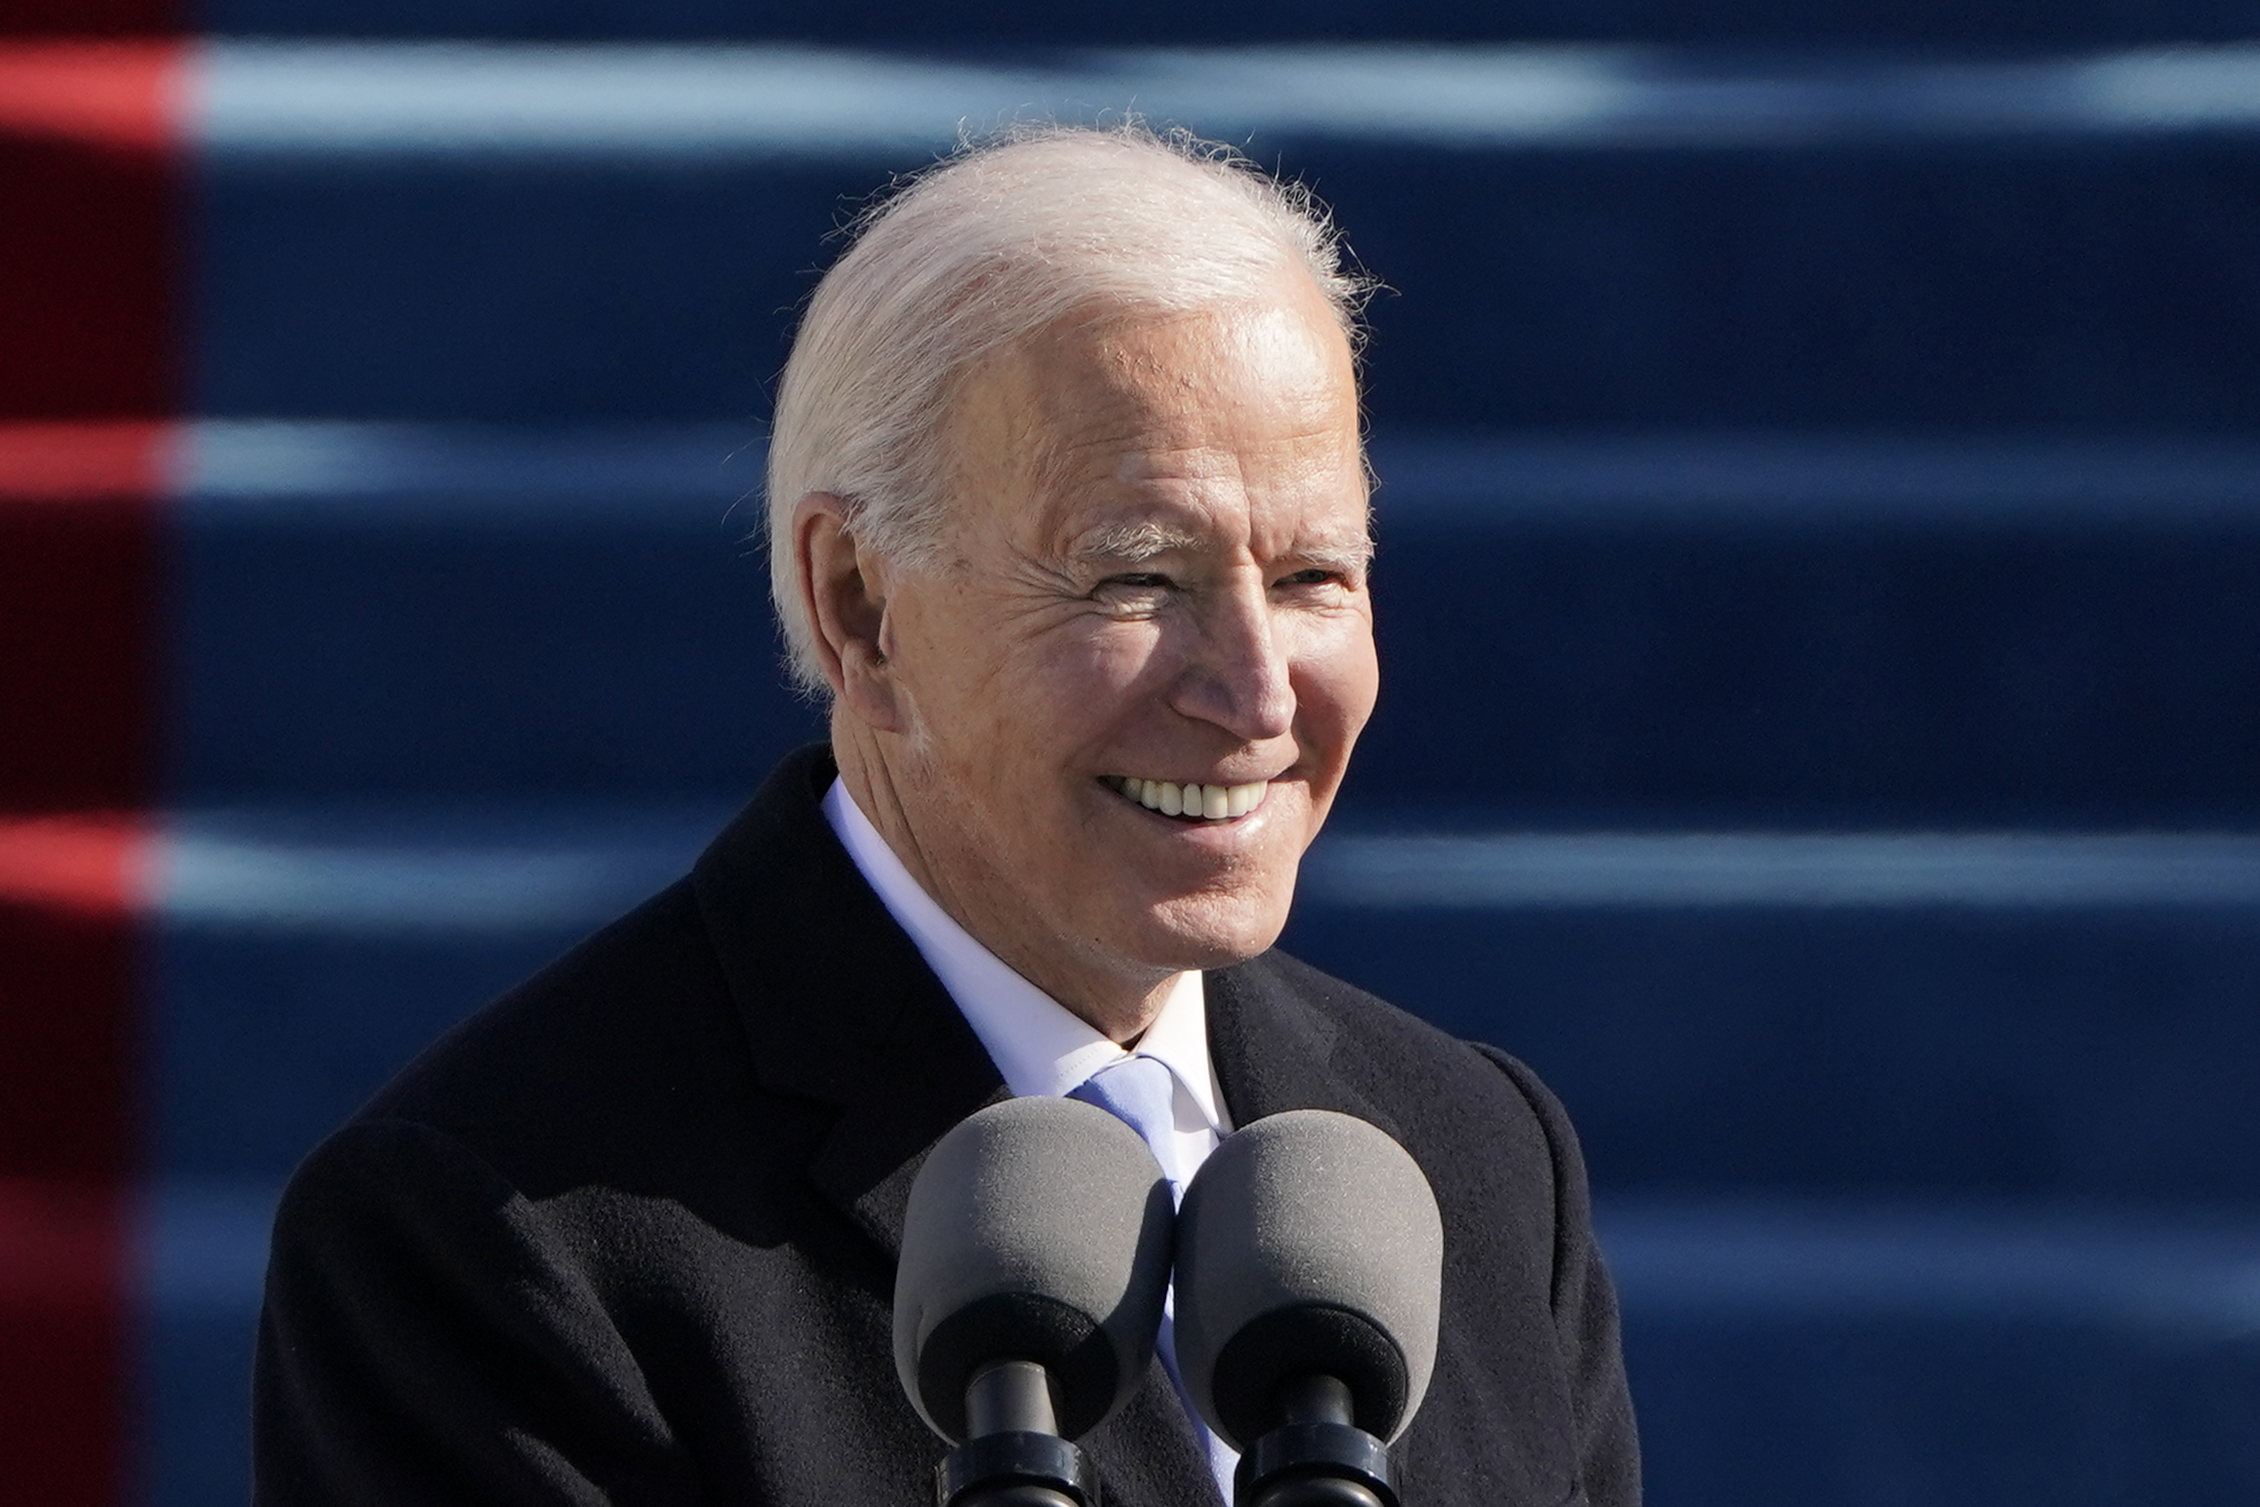 The Uncertain Promise of Biden's Presidency thumbnail